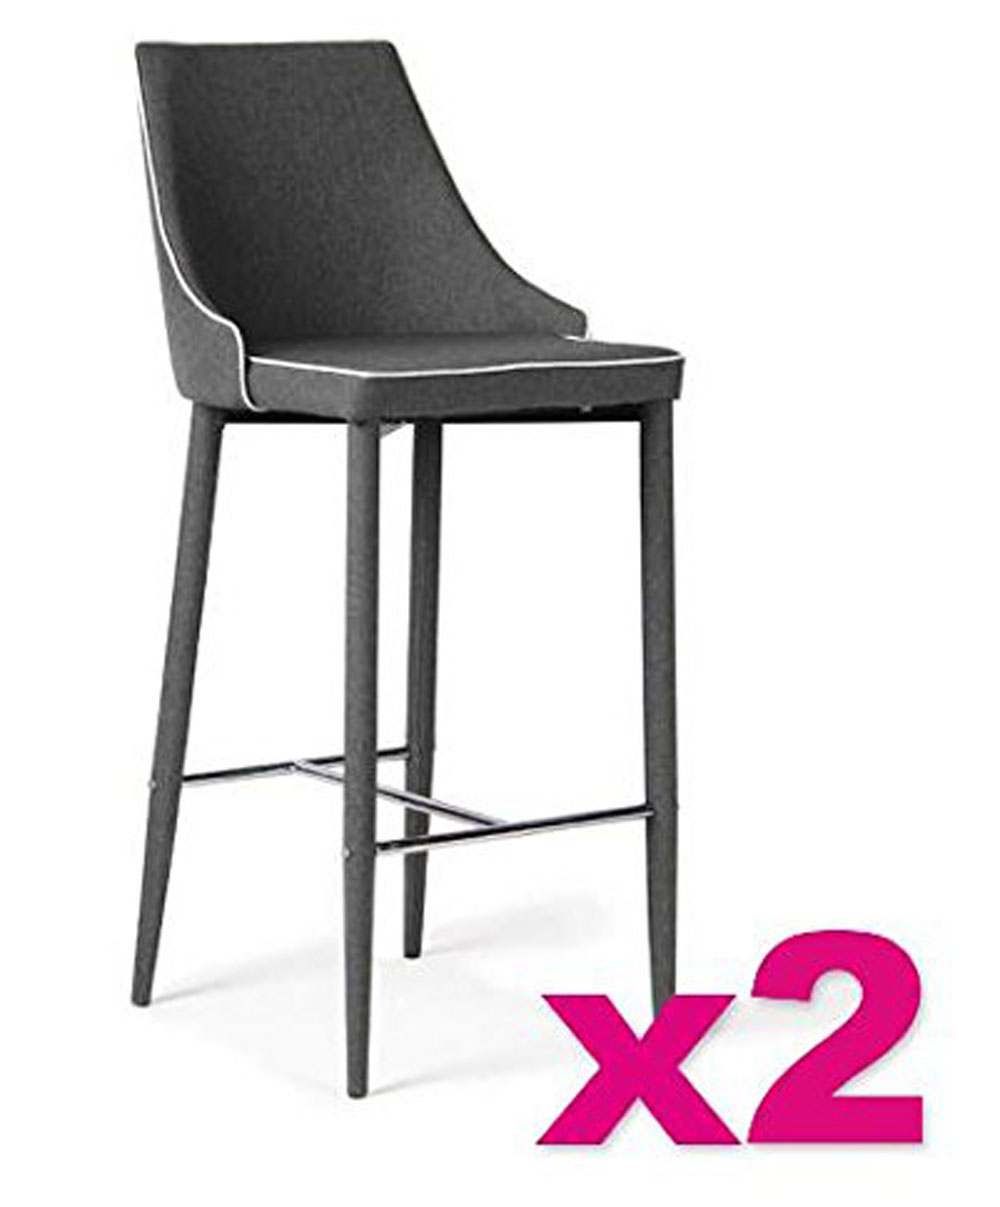 lot de 2 tabourets de bar tissu romeo en gris galet l48 x h106 x p52 cm ebay. Black Bedroom Furniture Sets. Home Design Ideas